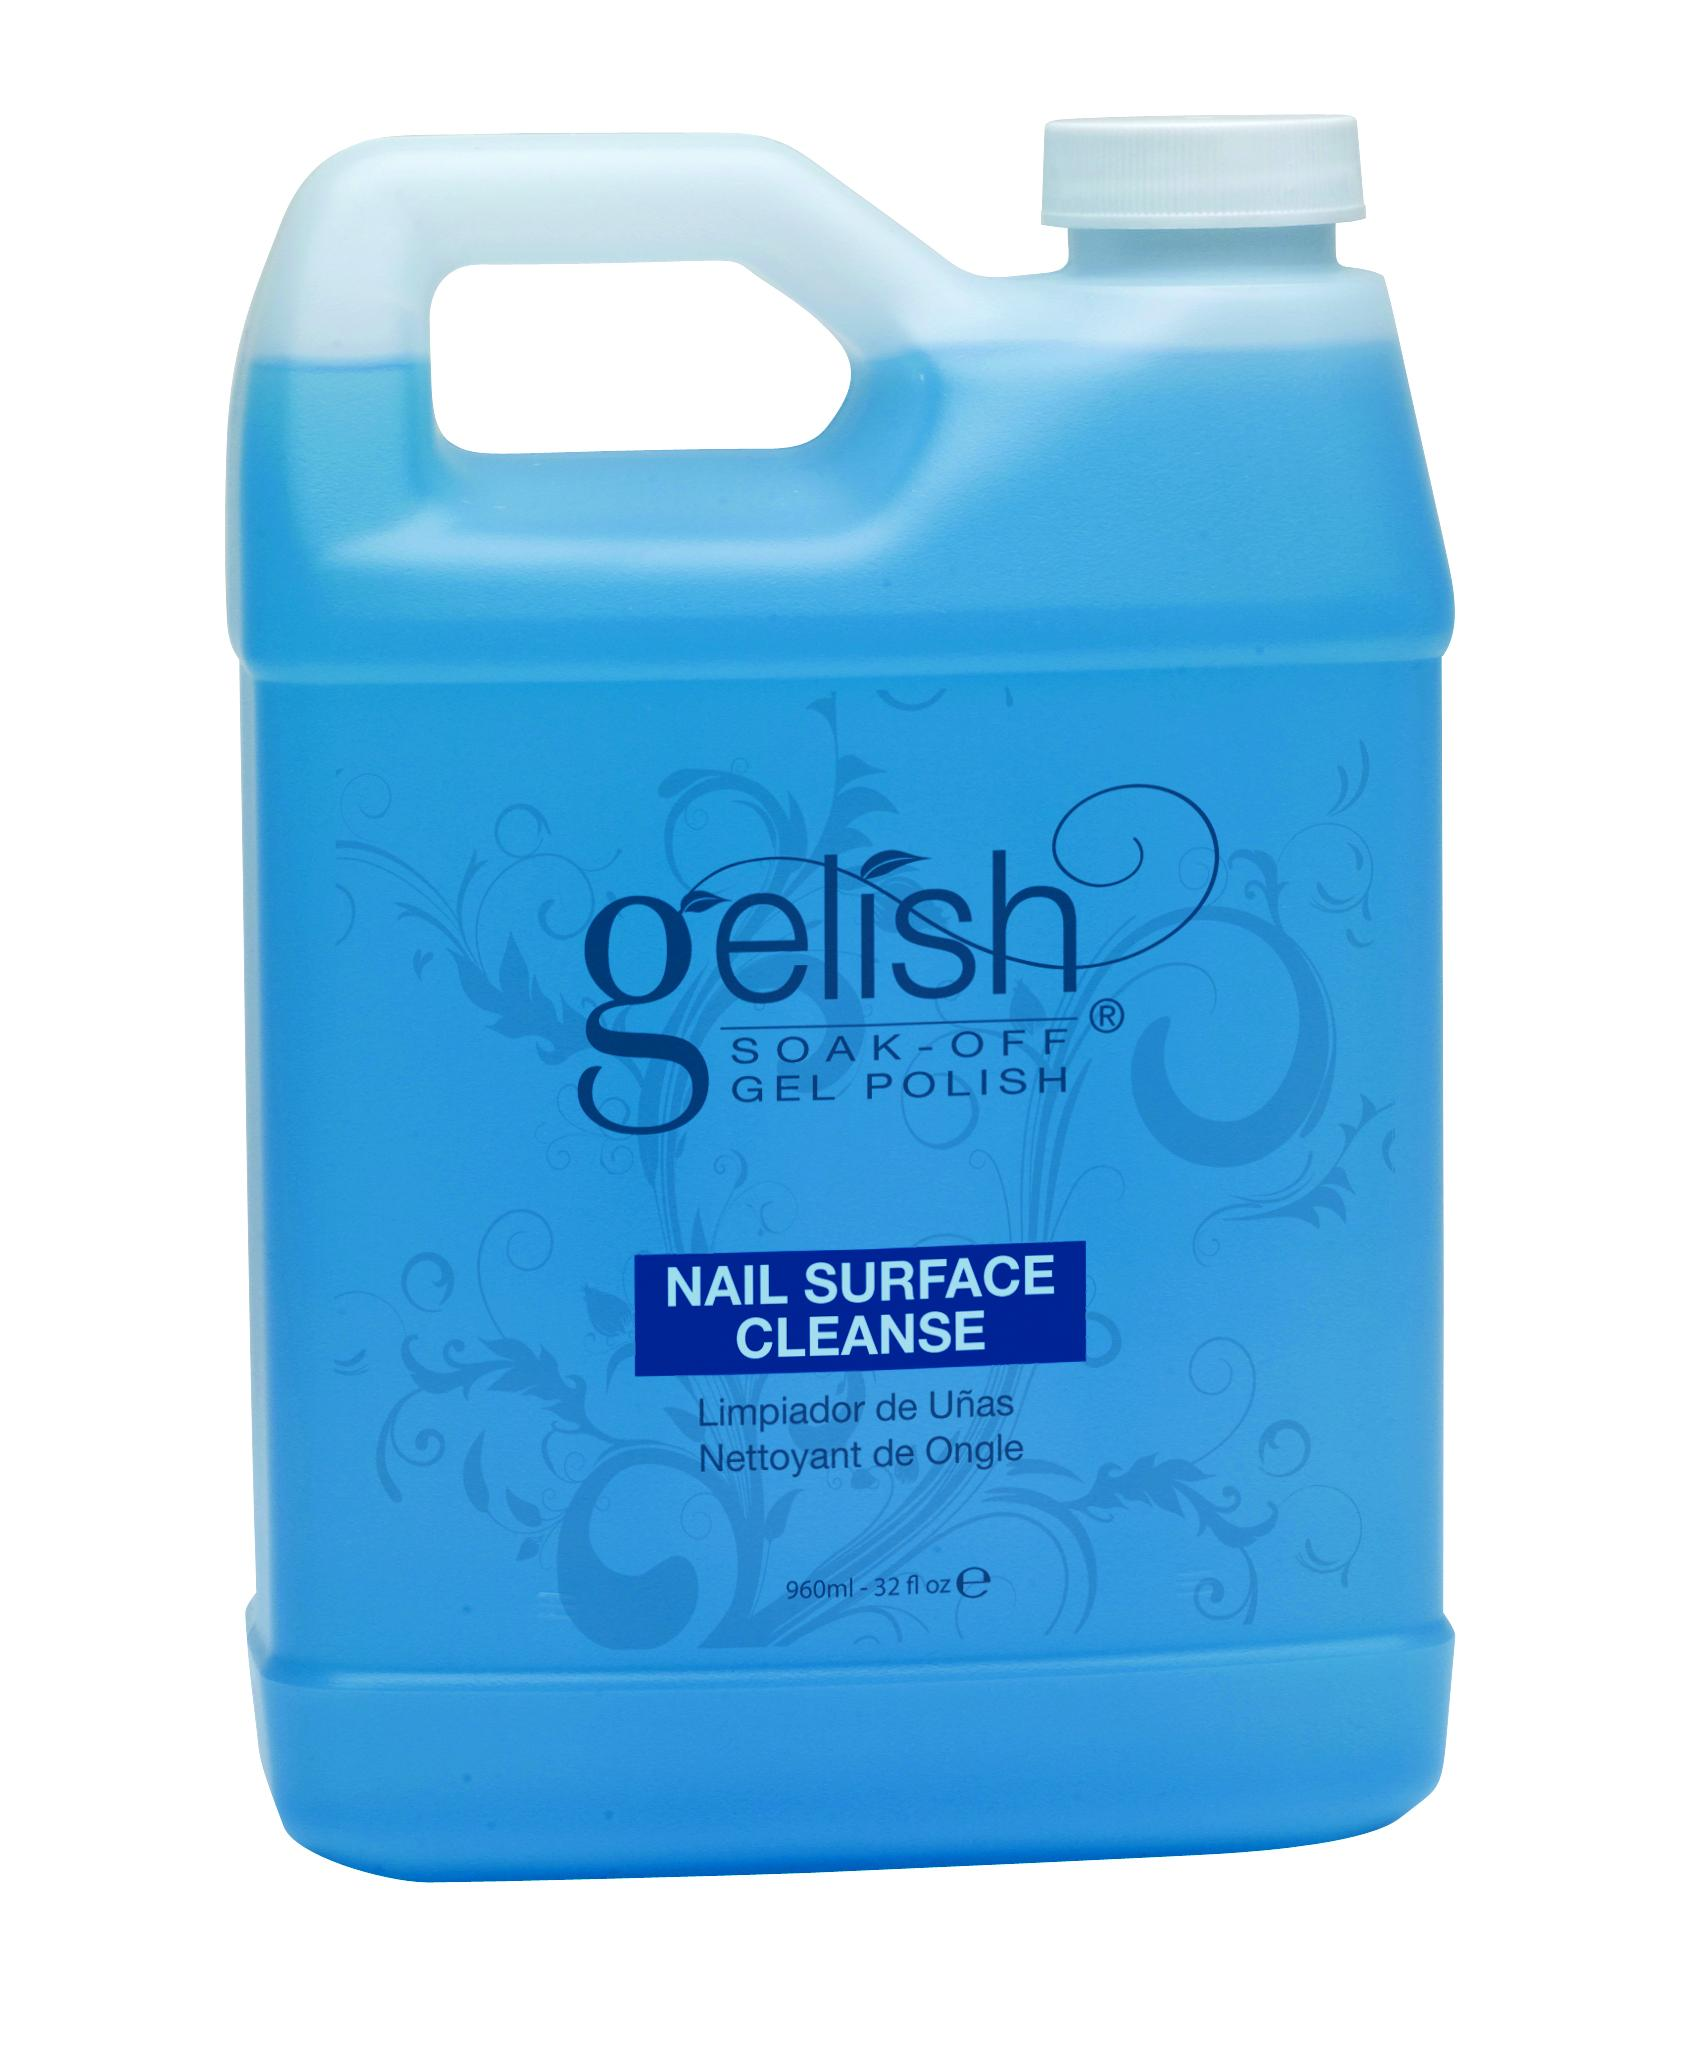 GELISH Препарат для удаления липкого слоя / GELISH Nail Surface Cleanser 960мл